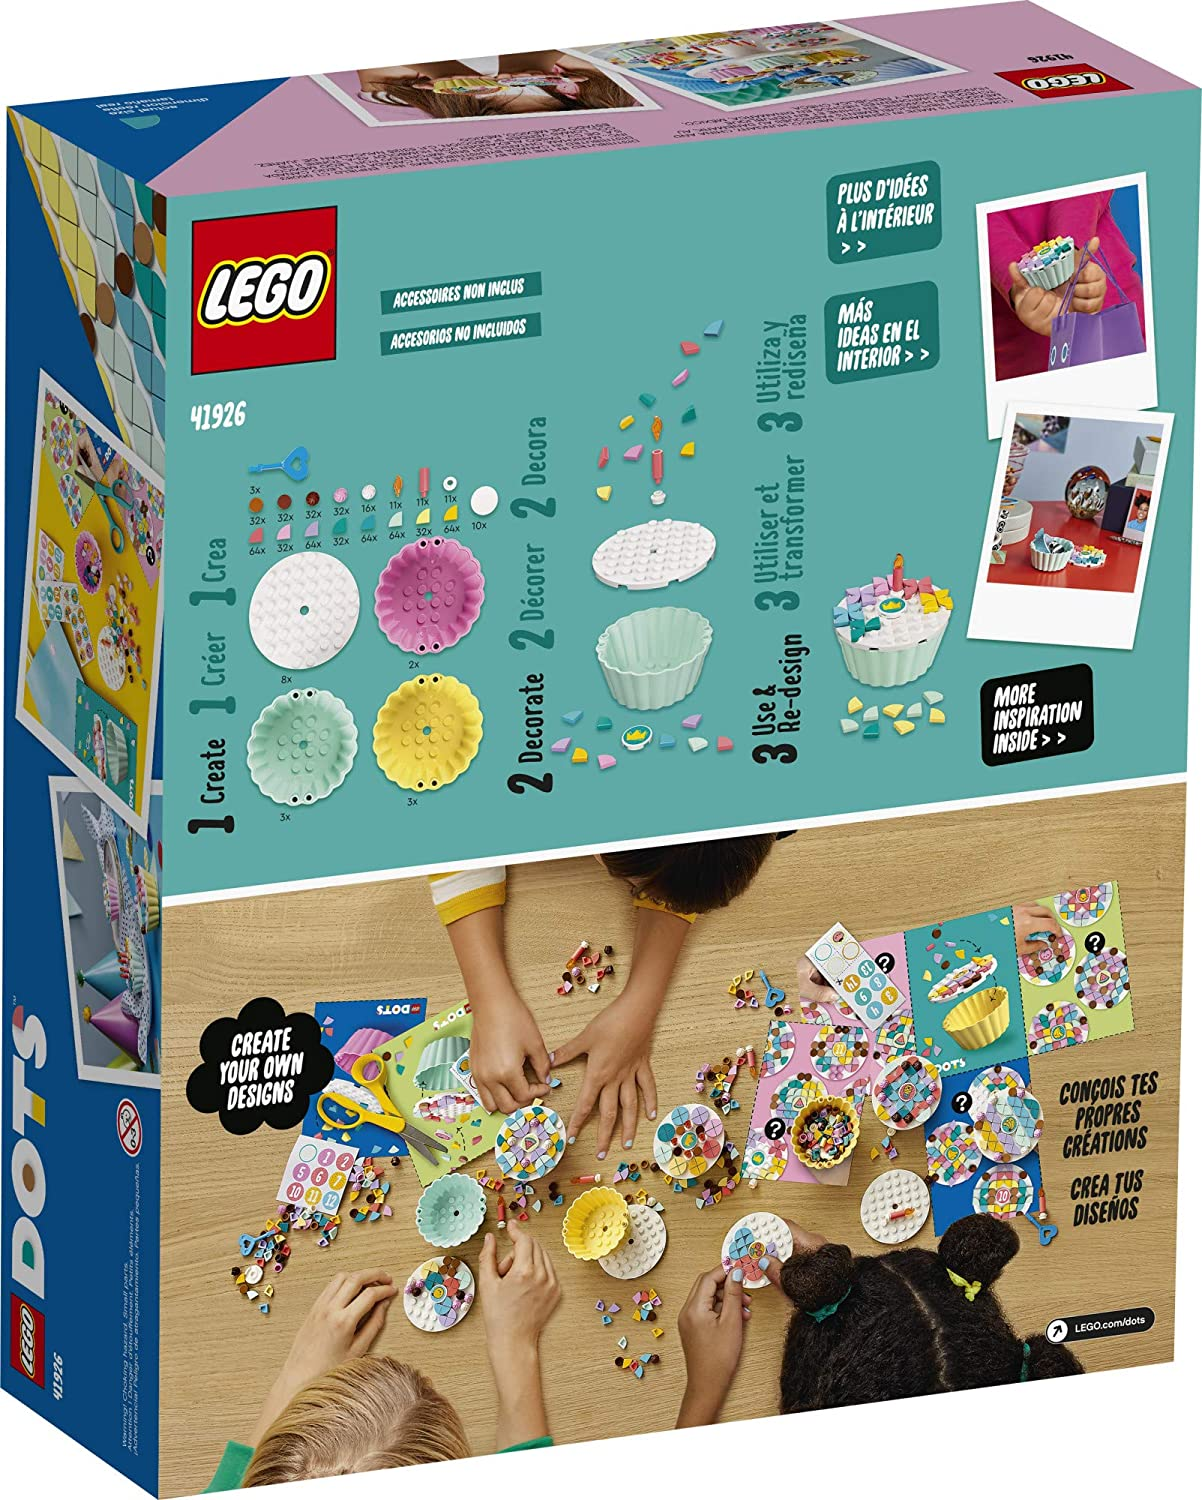 Lego August 2022 Calendar.40402 Youth Day Kids Lego August 2020 Monthly Build I Combine Shipping Toys Hobbies Lego Building Toys